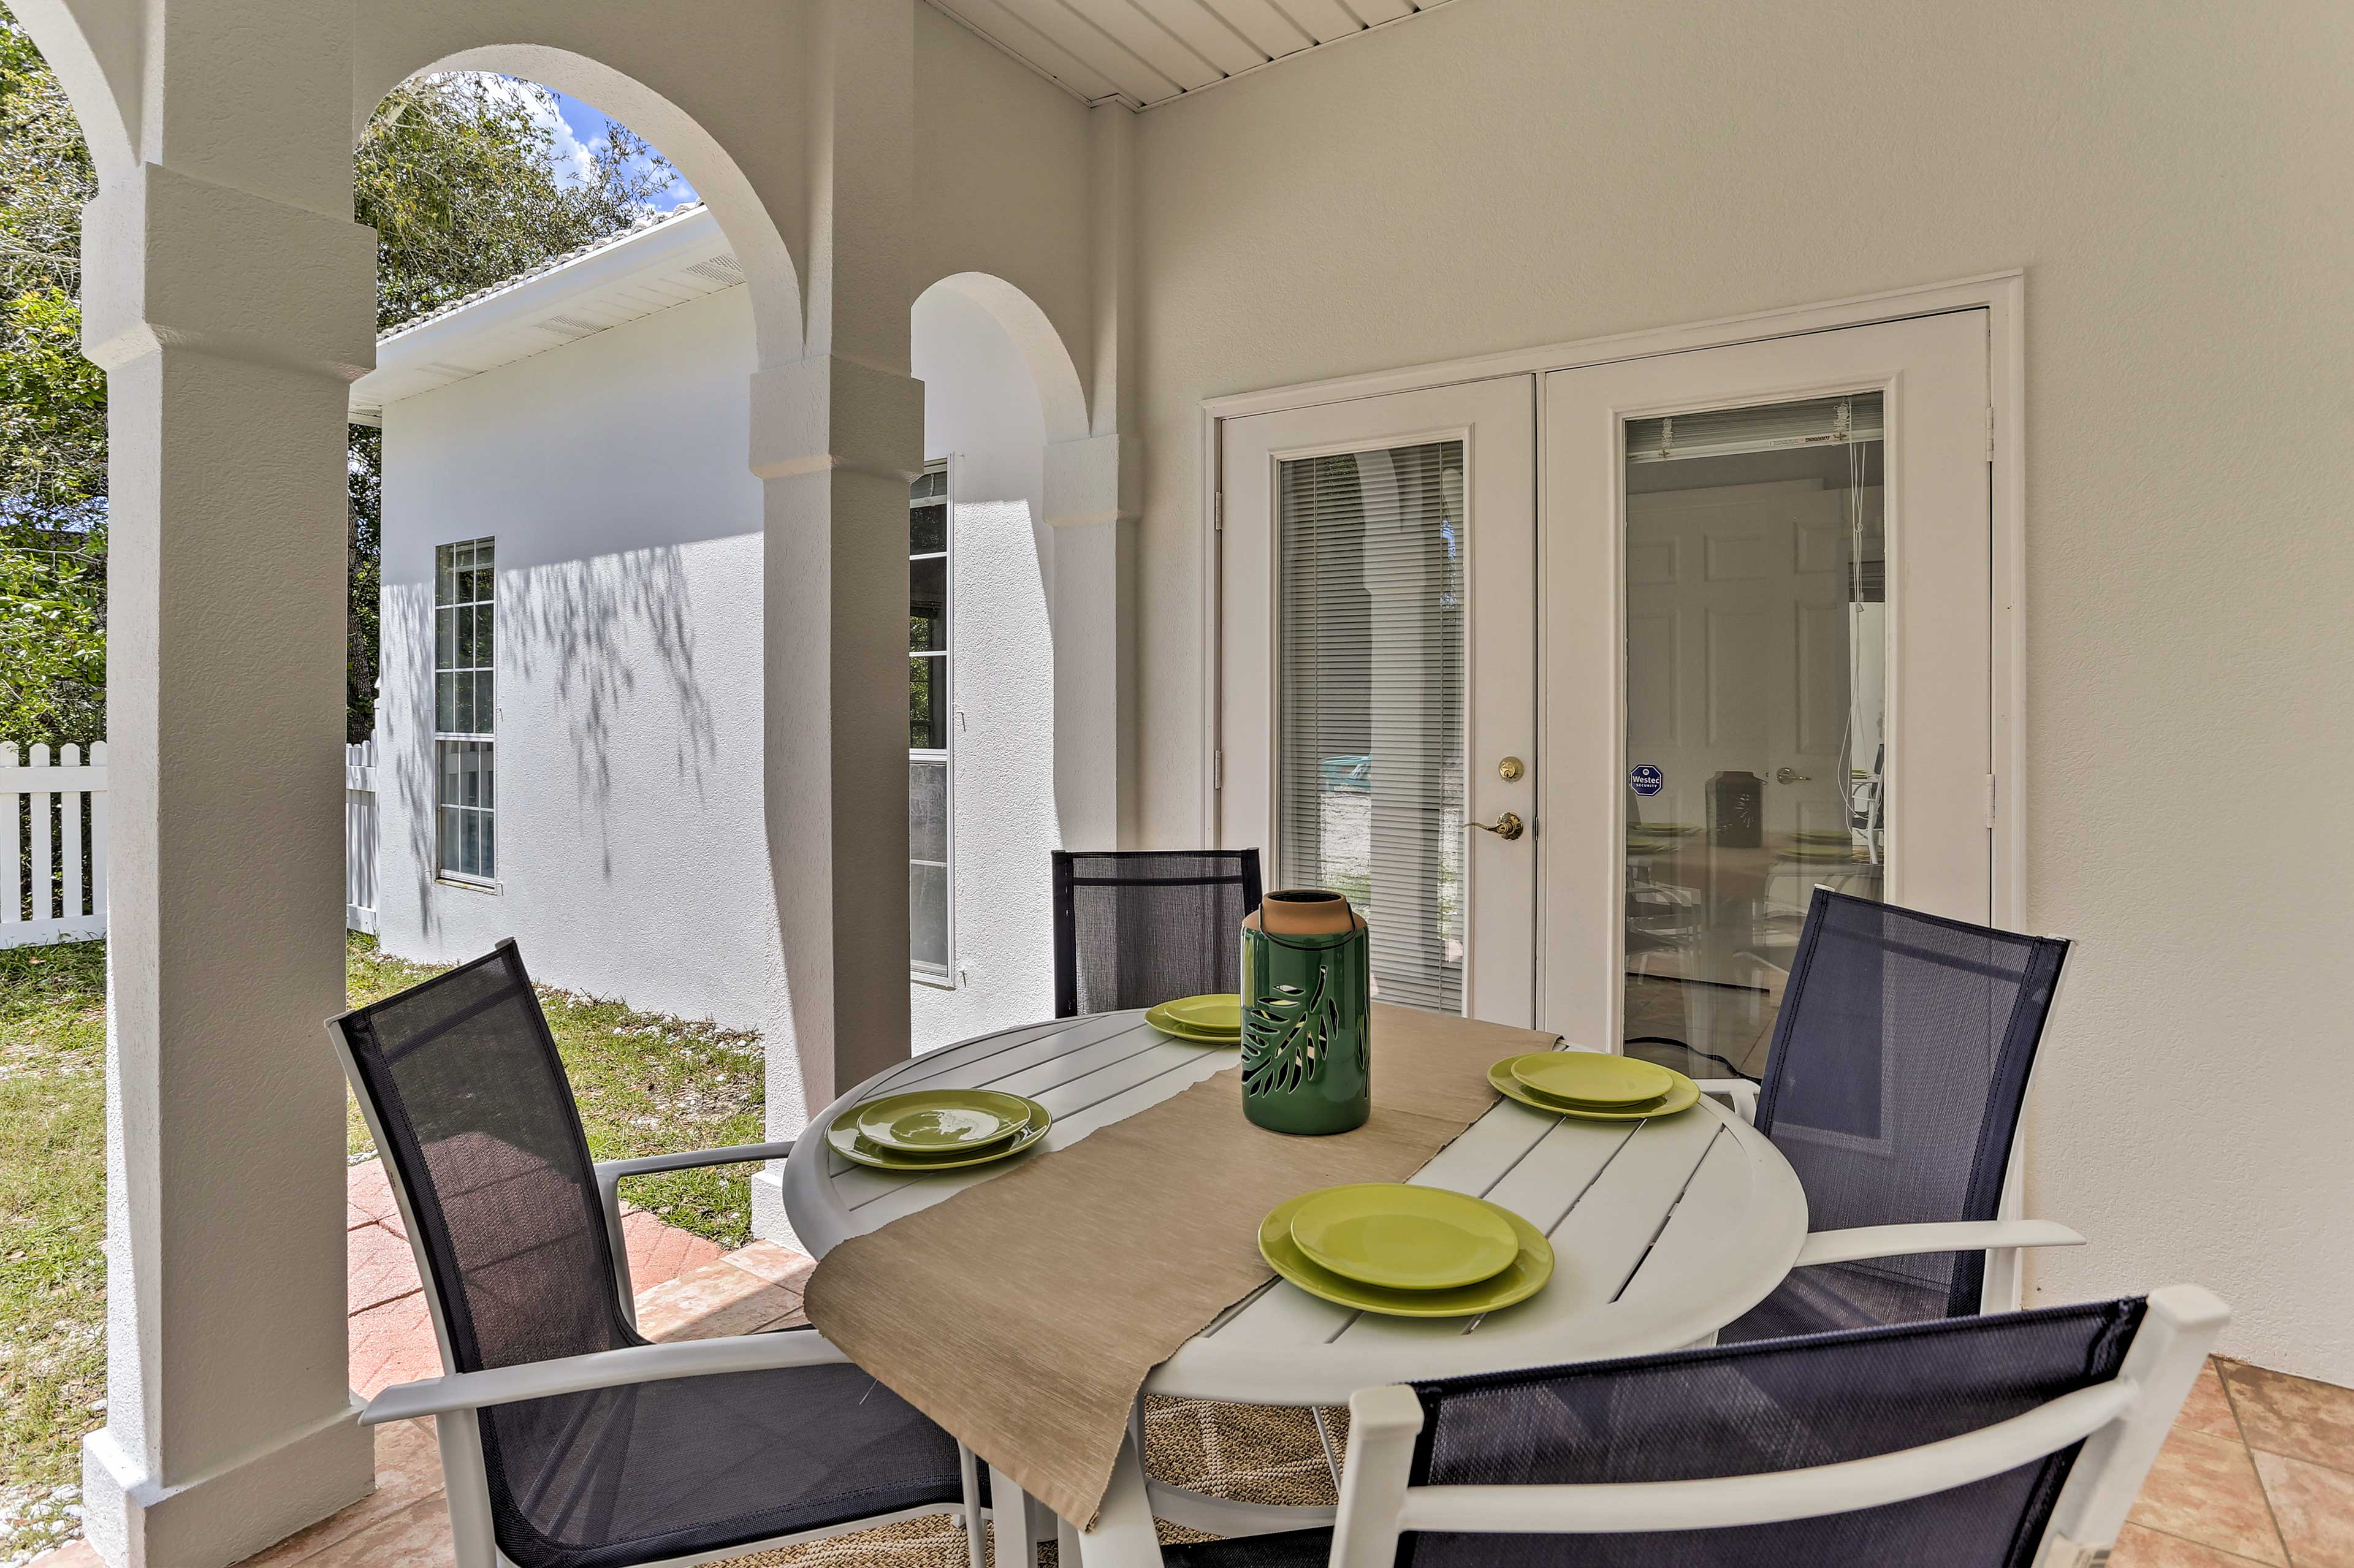 Host memorable family dinners out on the patio.